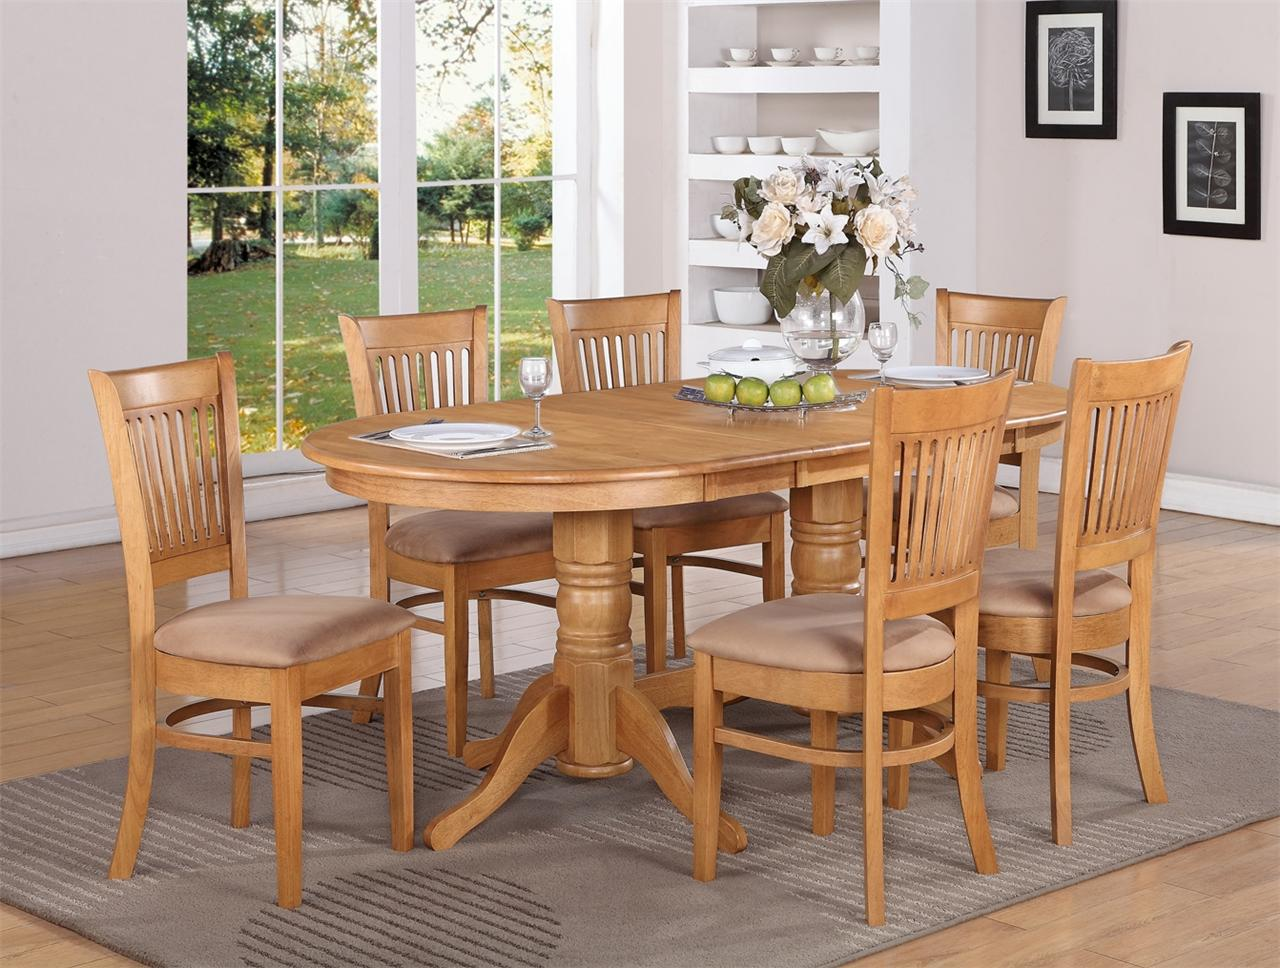 7 pc vancouver oval dinette kitchen dining table w 6 for Kitchen table and chairs